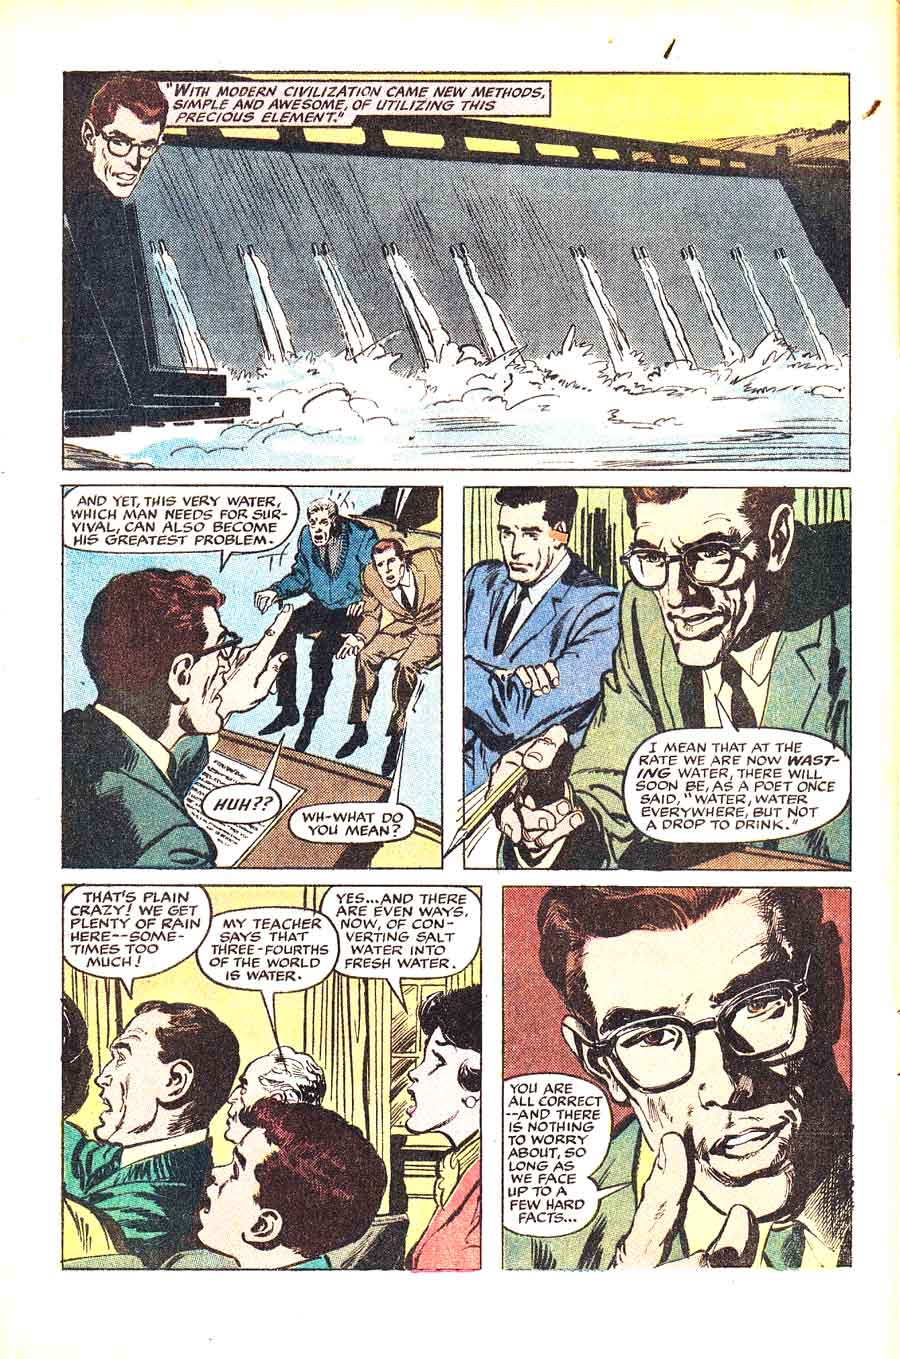 Neal Adams page - Case of the Wasted Water 1960s giveaway comic book